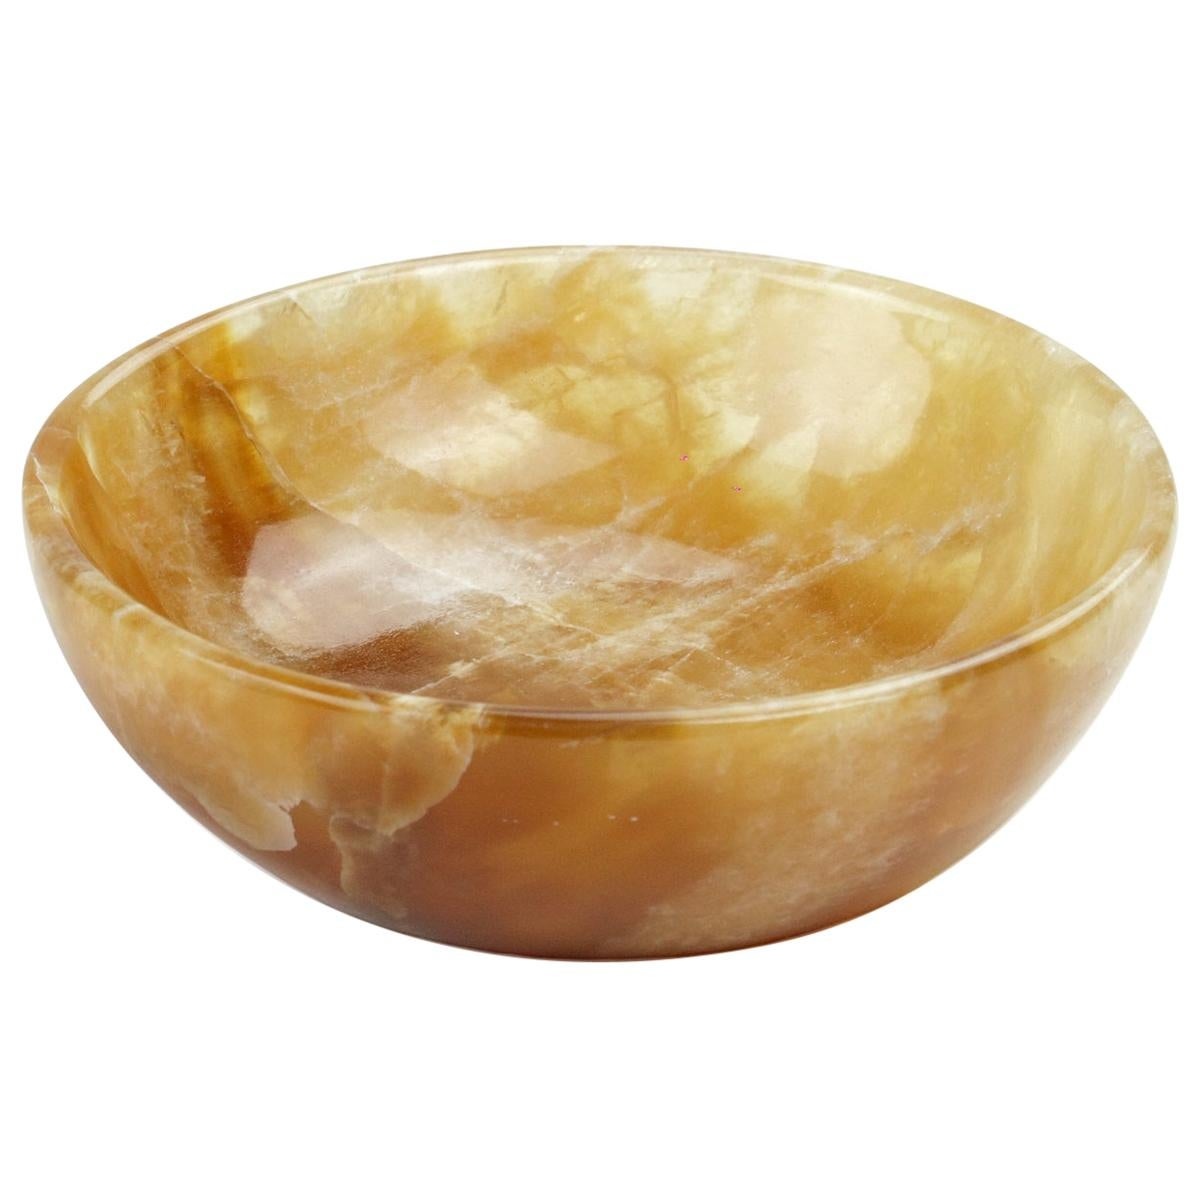 Handmade Small Round Bowl in Amber Onyx Contemporary Design by Pieruga, Italy